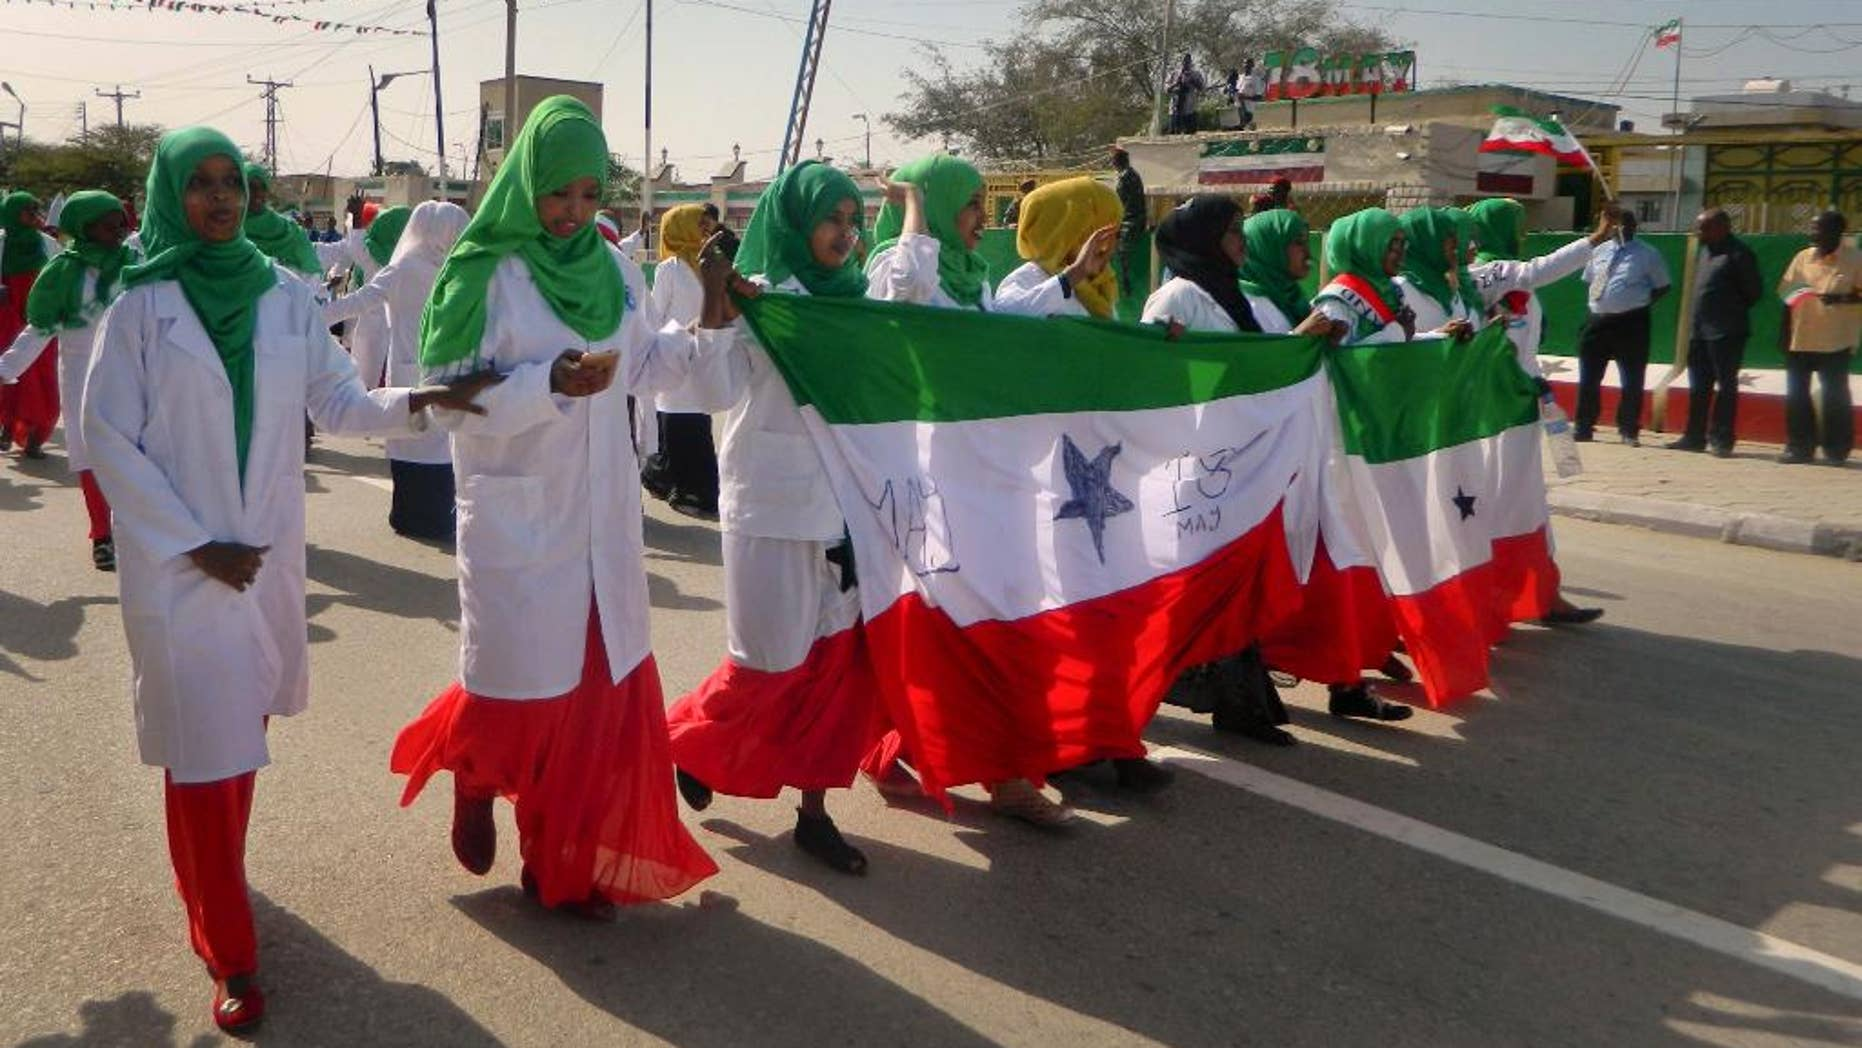 Women march in a procession to celebrate the 25th anniversary of proclaimed independence in the capital Hargeisa, Somaliland, a breakaway region of Somalia Wednesday, May 18, 2016. Somaliland is celebrating 25 years since the region proclaimed its independence and has experienced relative stability and economic prosperity over the years, even though Somalia has been wracked by deadly violence. (AP Photo/Barkhad Dahir).